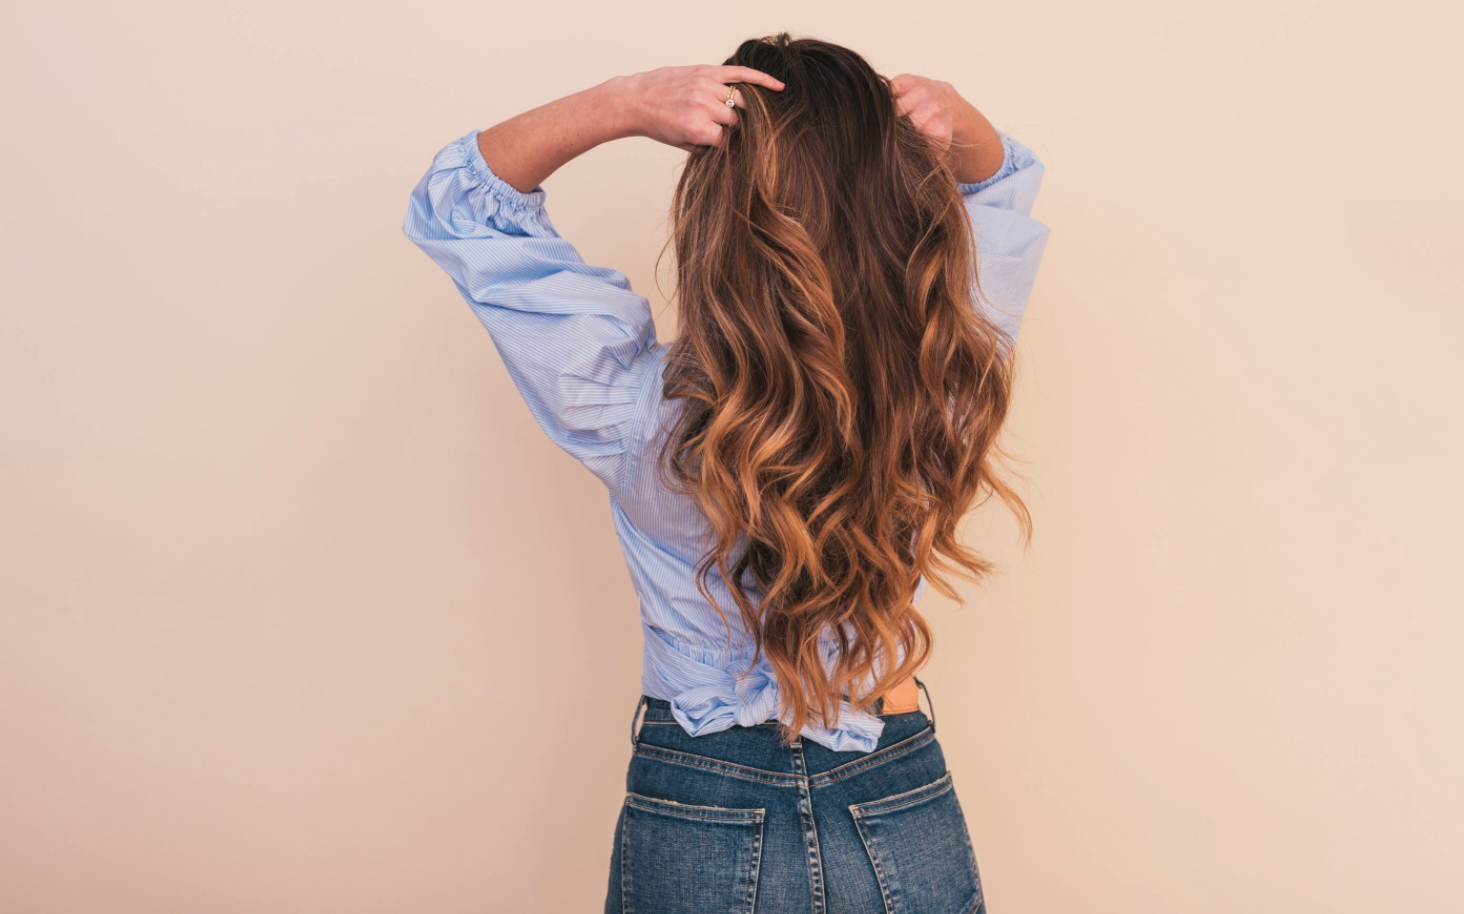 Tips and Tricks for Greasy Hair